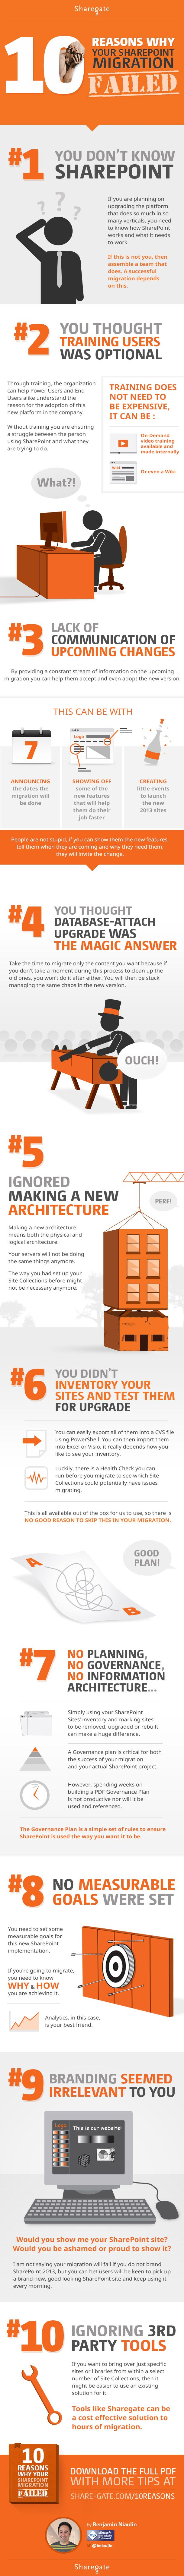 10 Reasons Why Your SharePoint Migration failed | SharePoint | infographic | ram2013